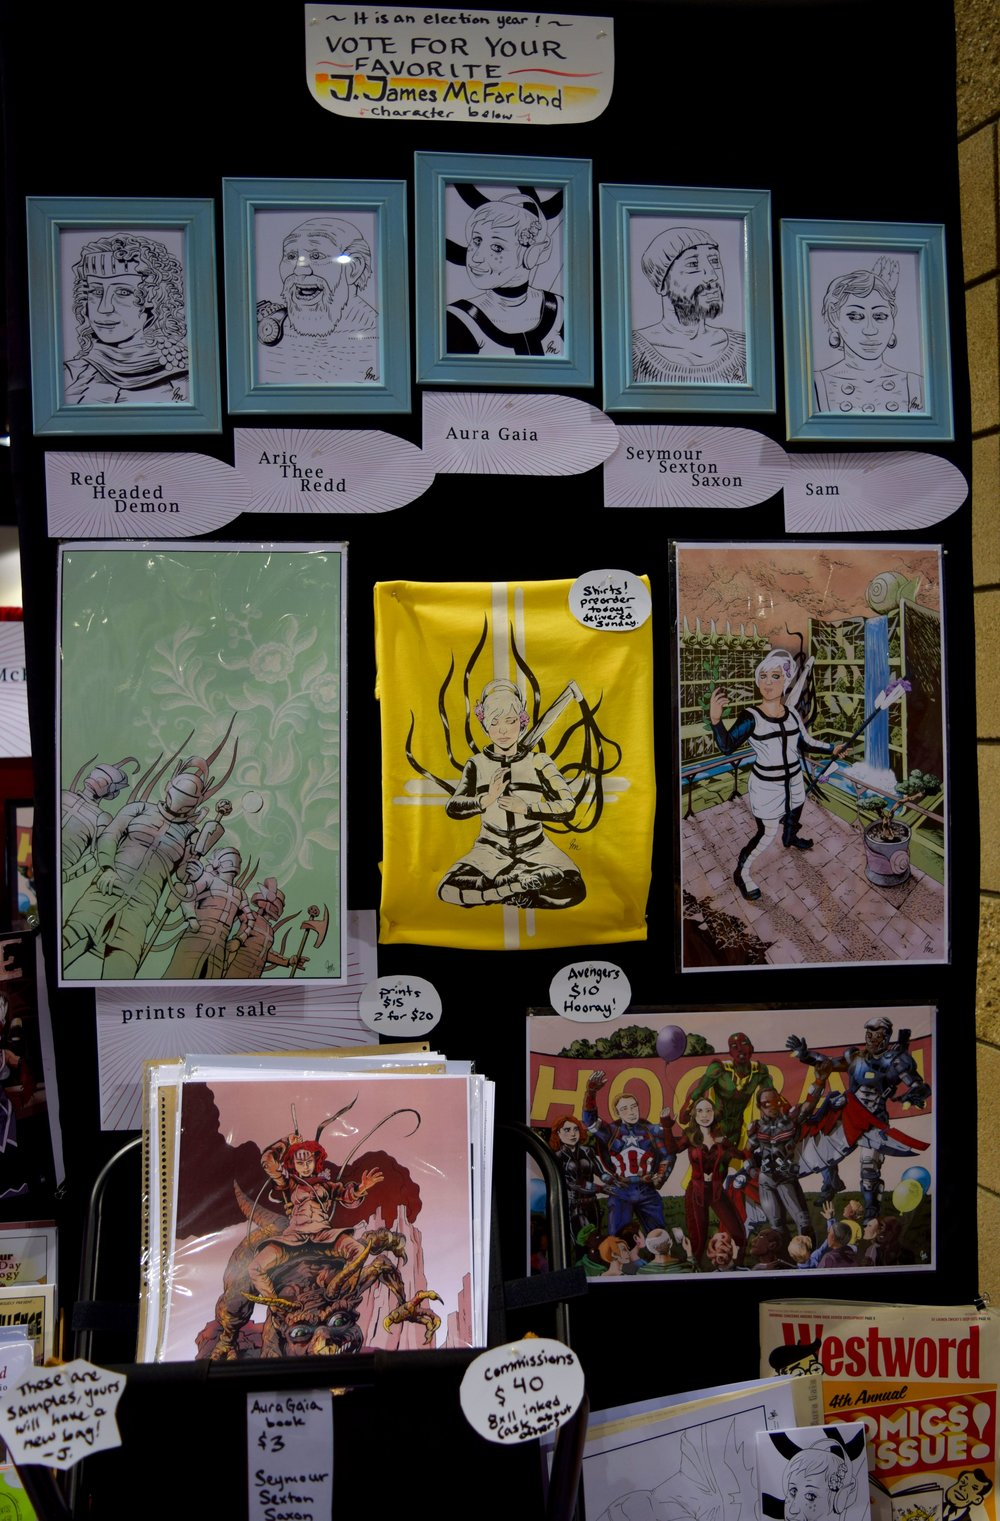 Prints and t-shirts from J. James McFarland at Denver Comic Con 2016.